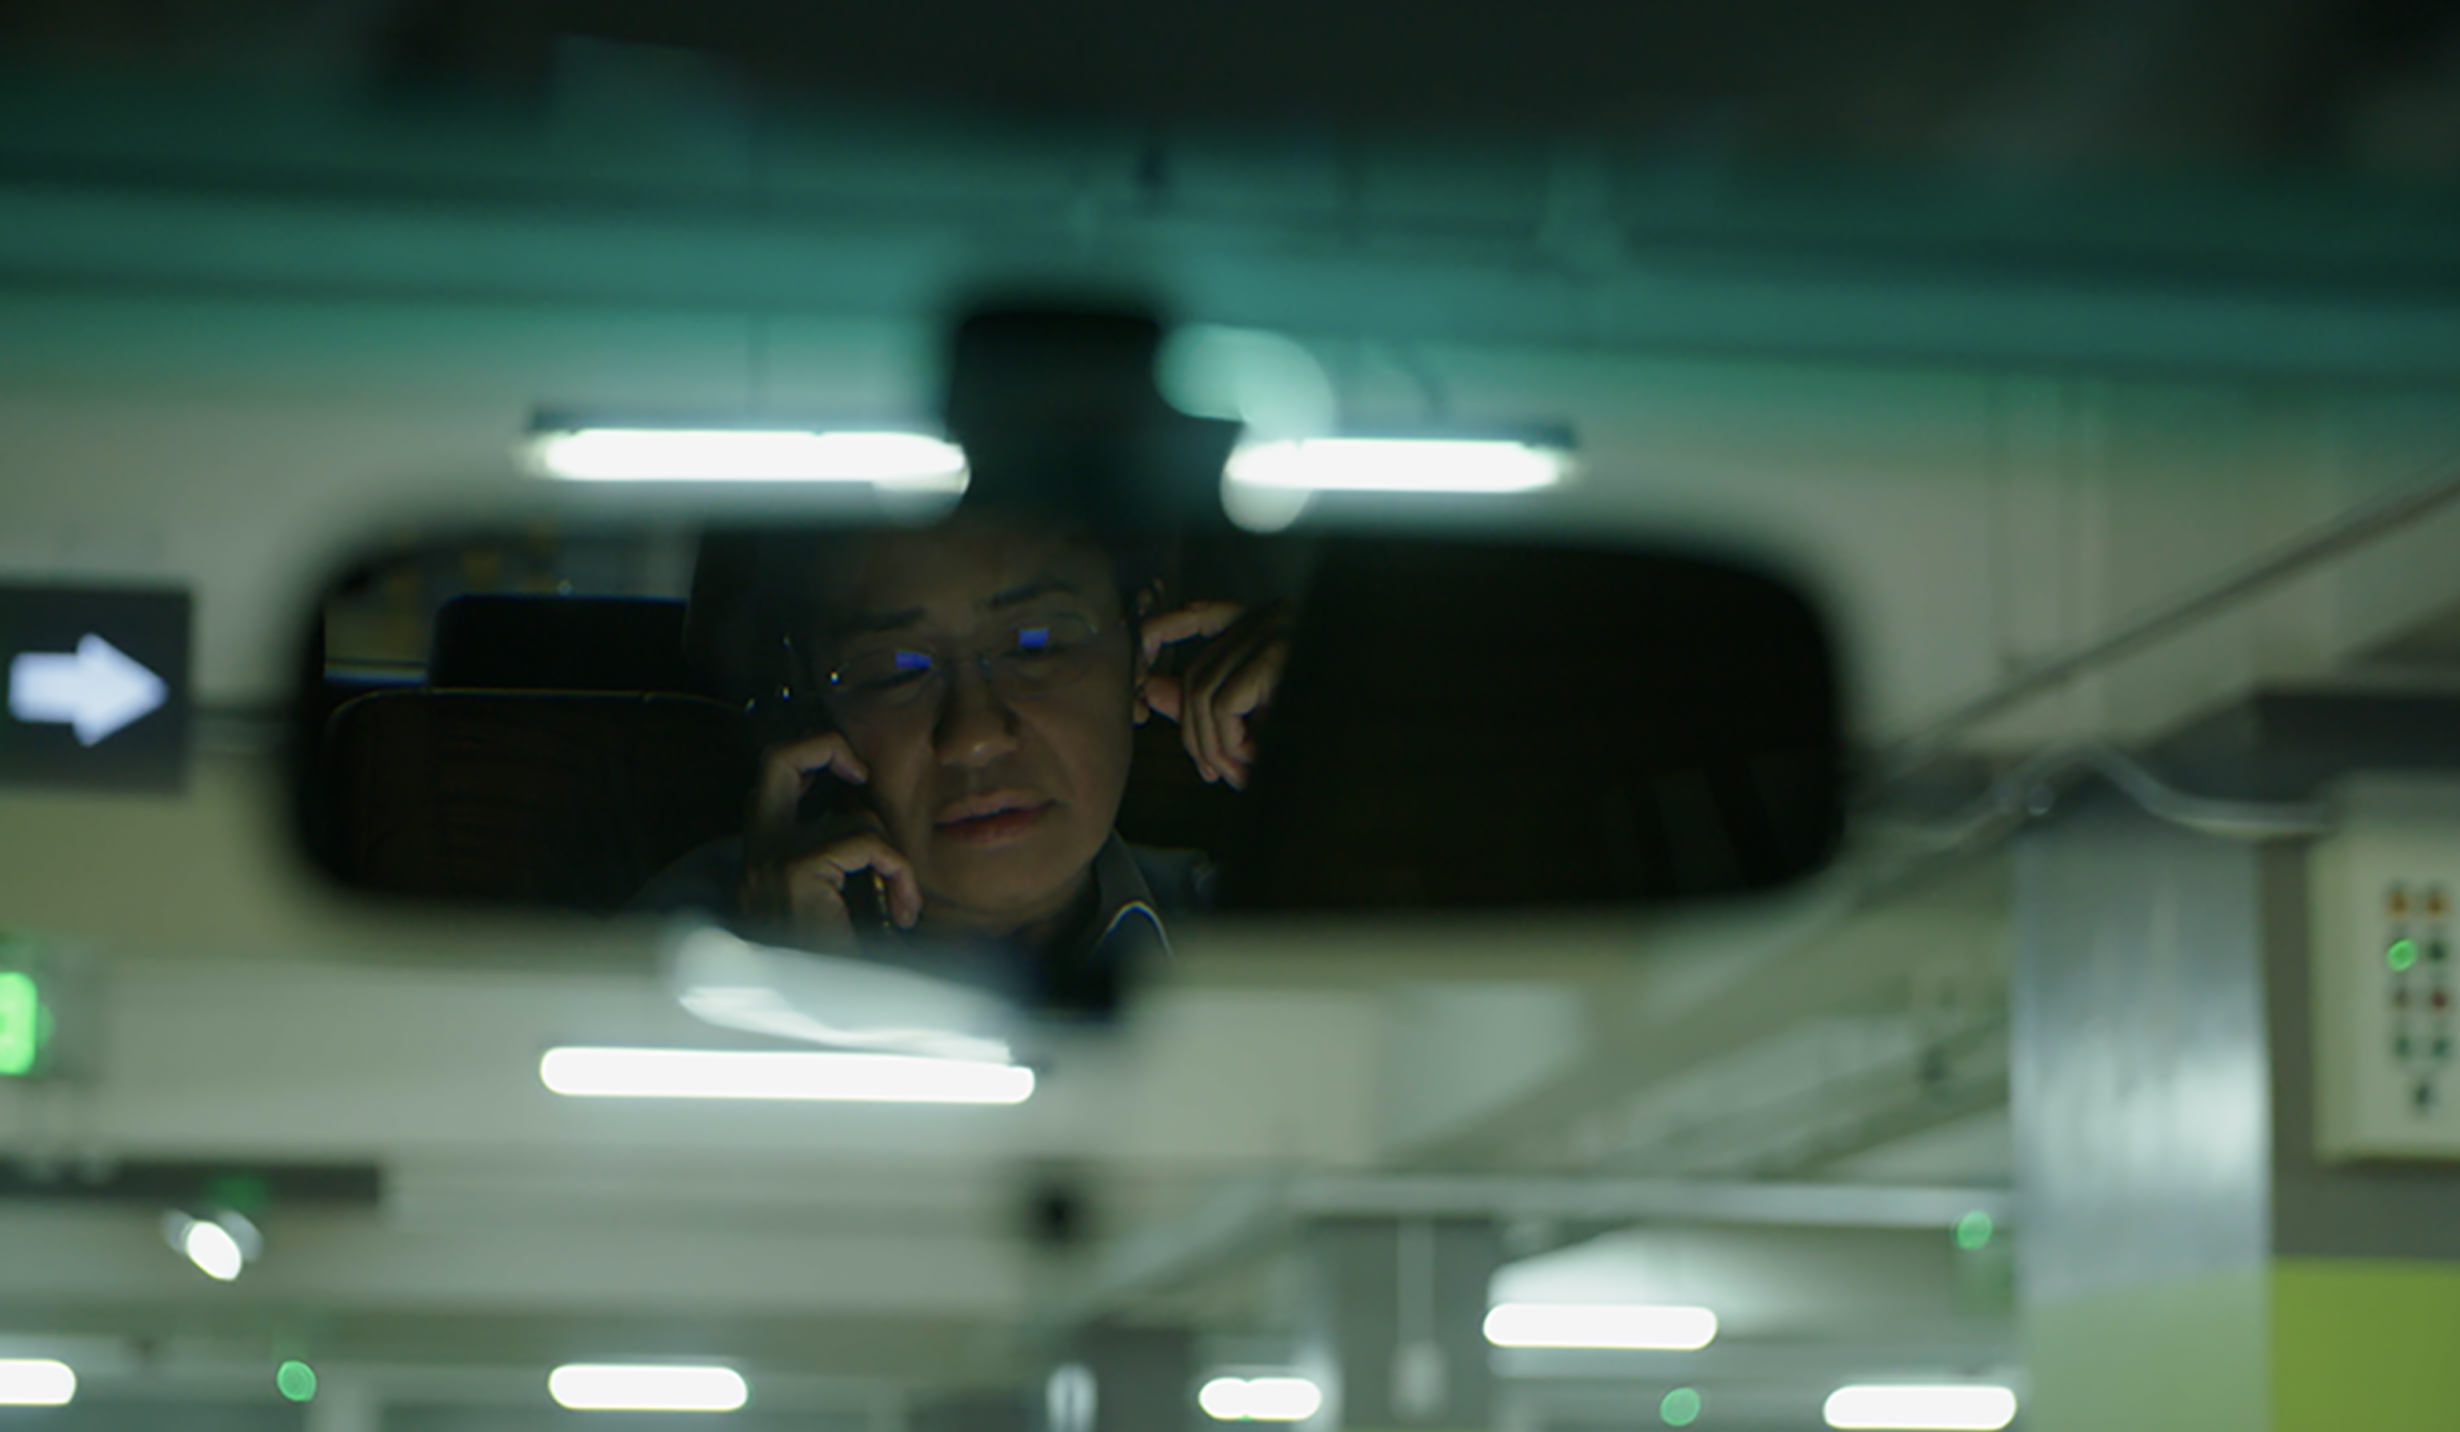 Maria Ressa, chief executive officer of Rappler and a TIME Person of the Year 2018, in a still from 'A Thousand Cuts'